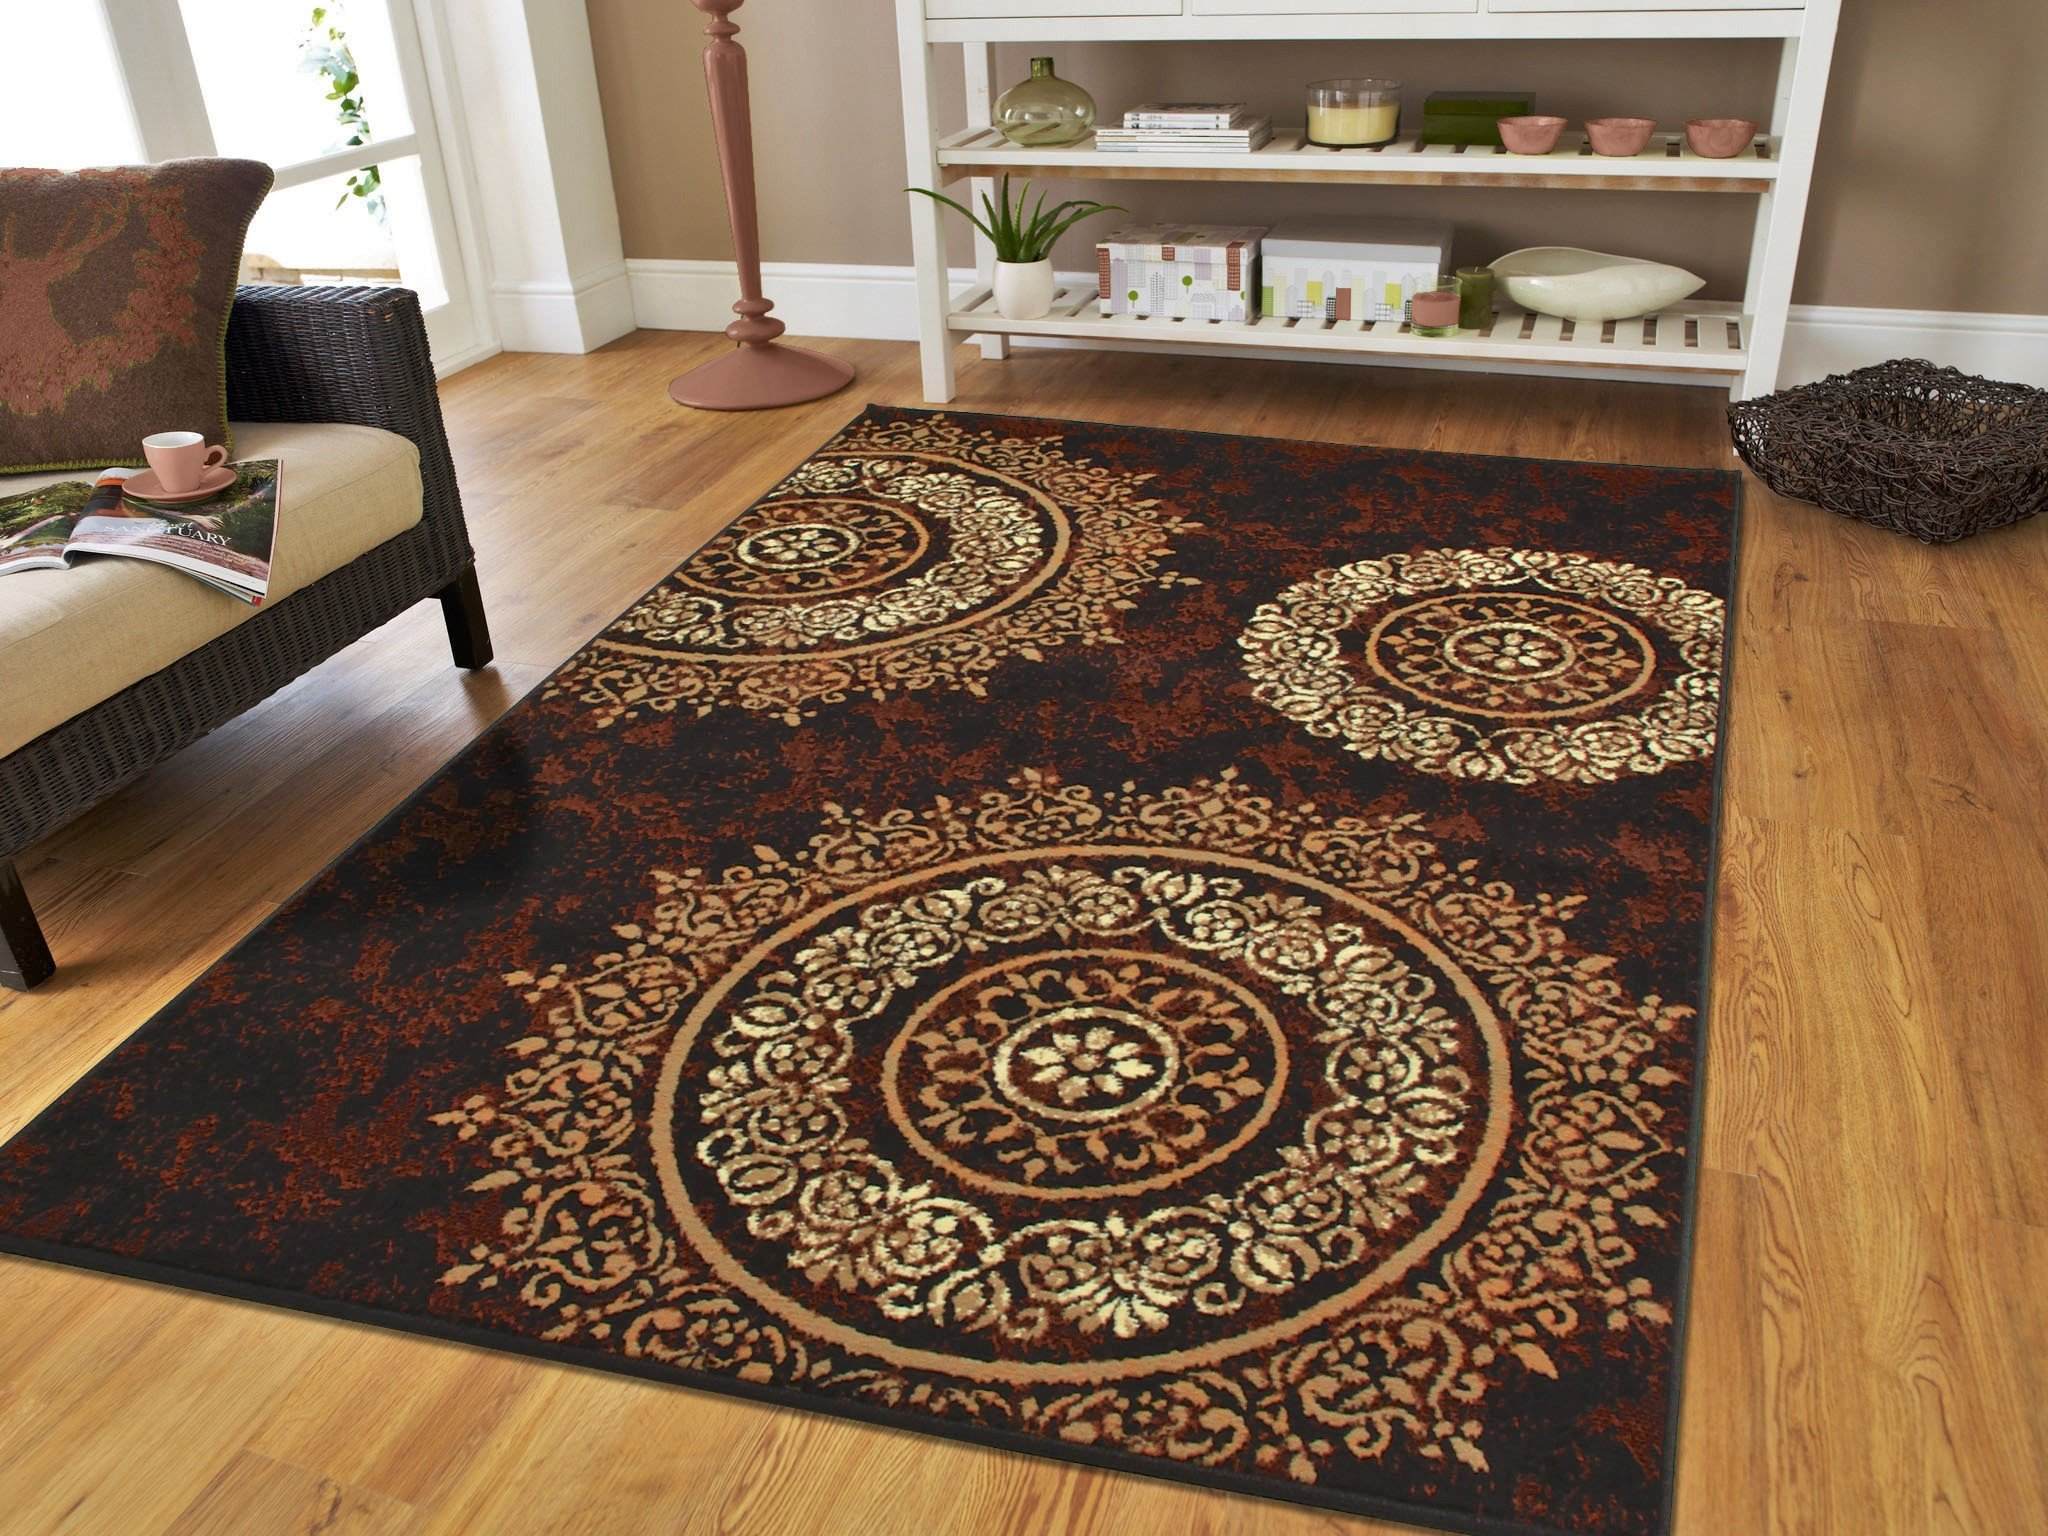 Amazon Com Large Contemporary Area Rugs 8x11 Modern Living Room Rugs 8x10 Black Brown Beige Cream Floral Rugs Clearance Area Rug Prime Furniture Decor